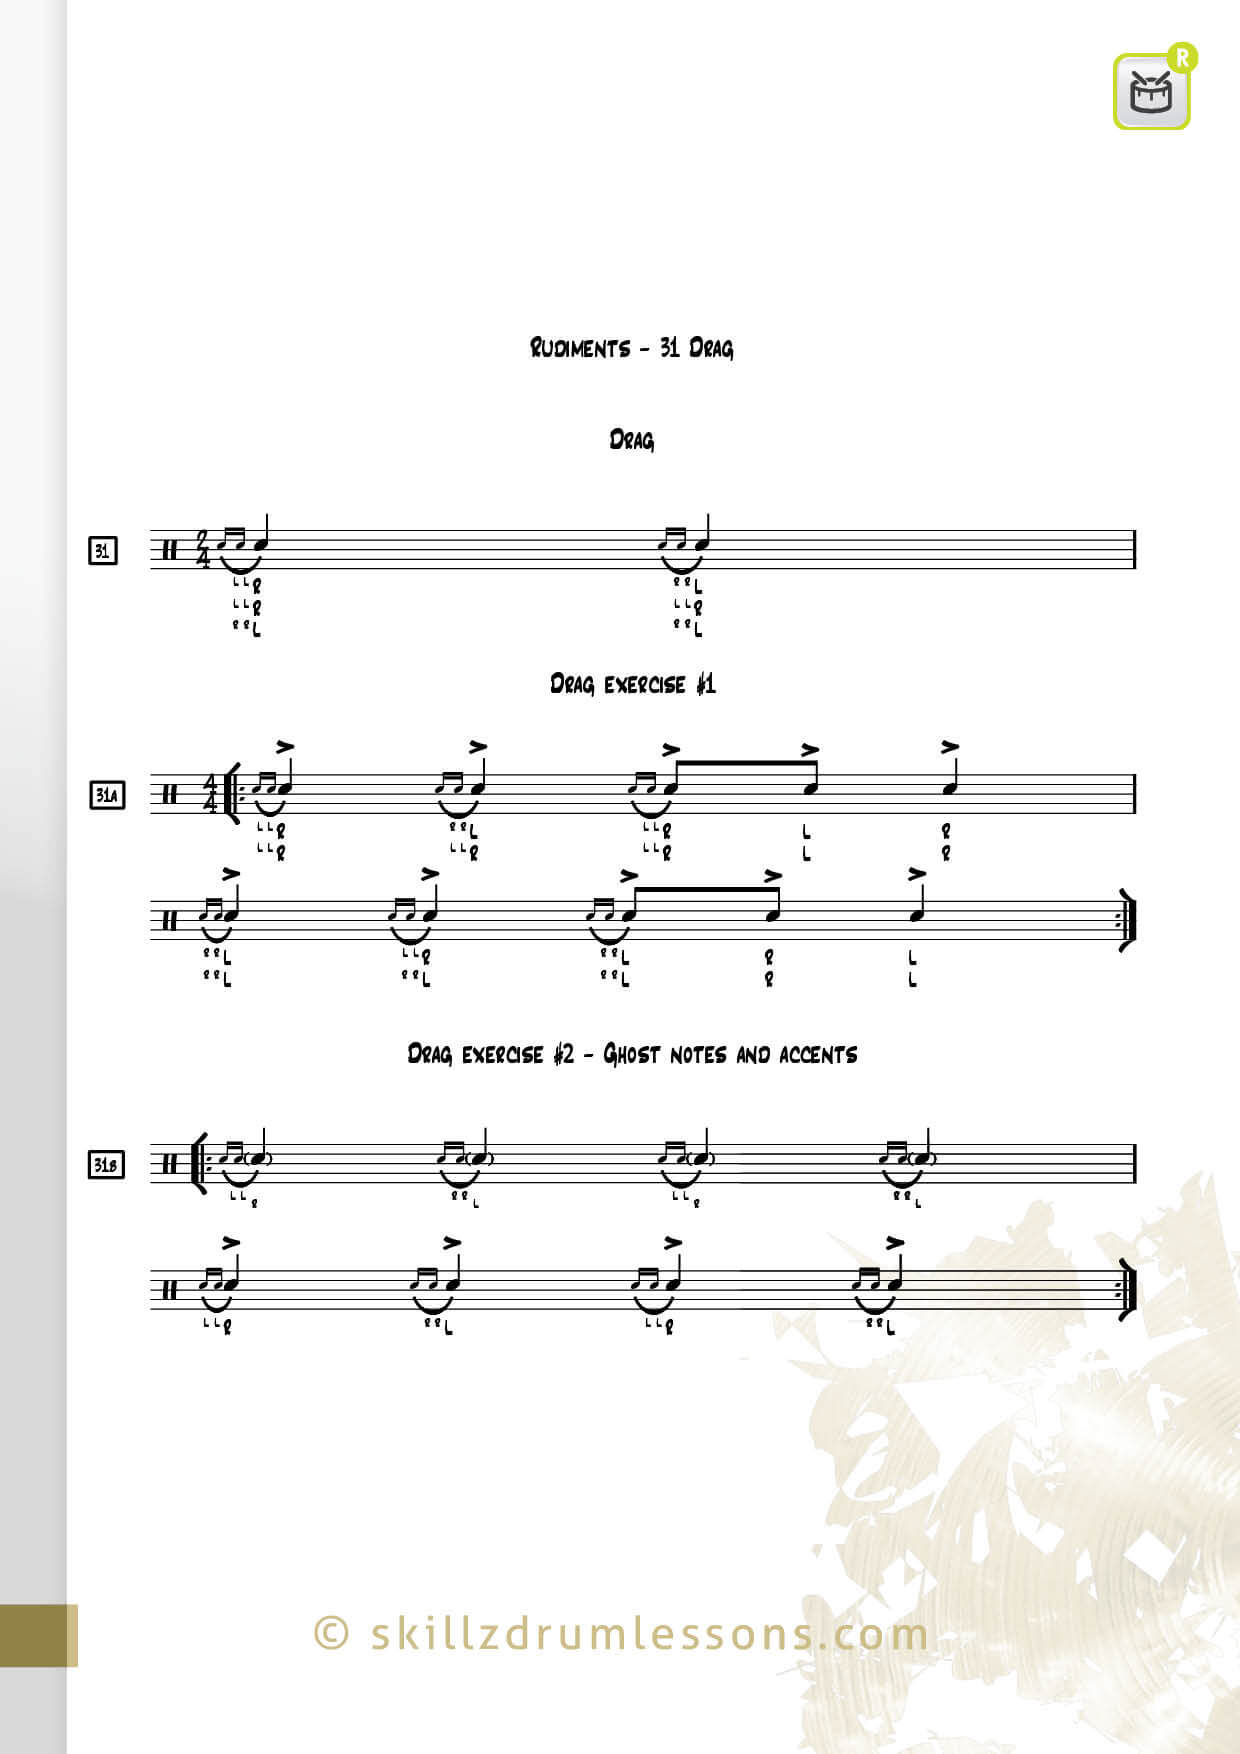 This is an image of the Official 40 Essential P.A.S. Rudiments #31 The Drag by Skillz Drum Lessons